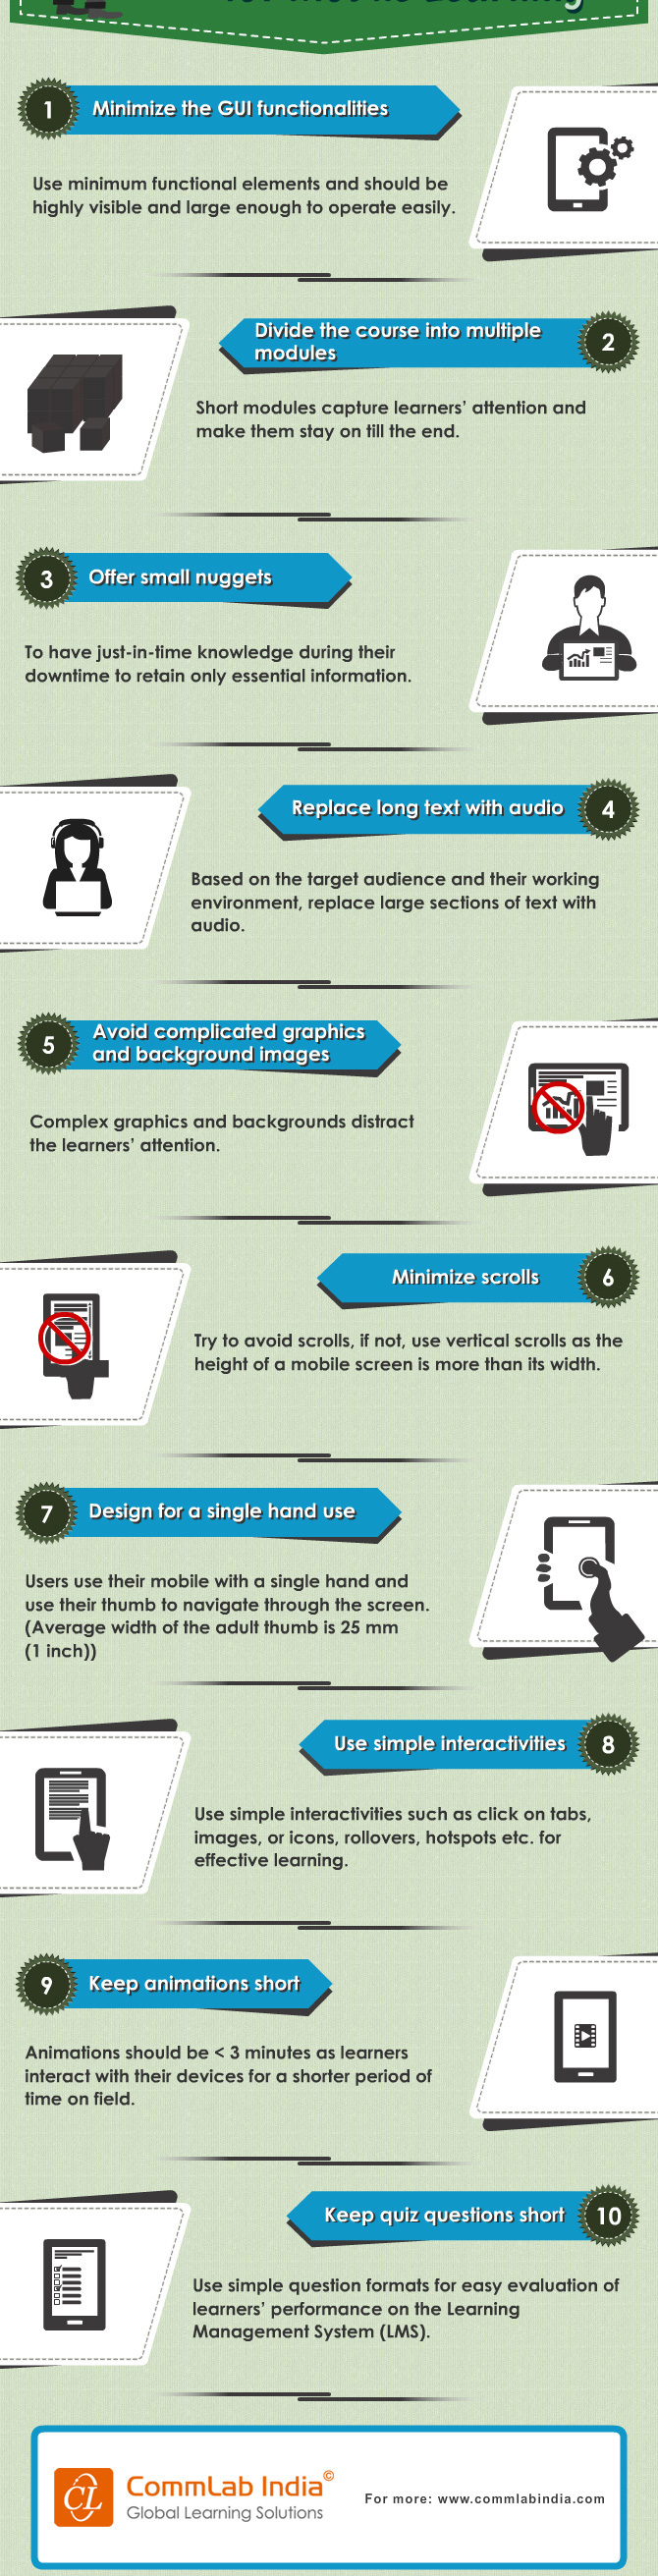 10 Learning Design Tips for Mobile Learning [Infographic]